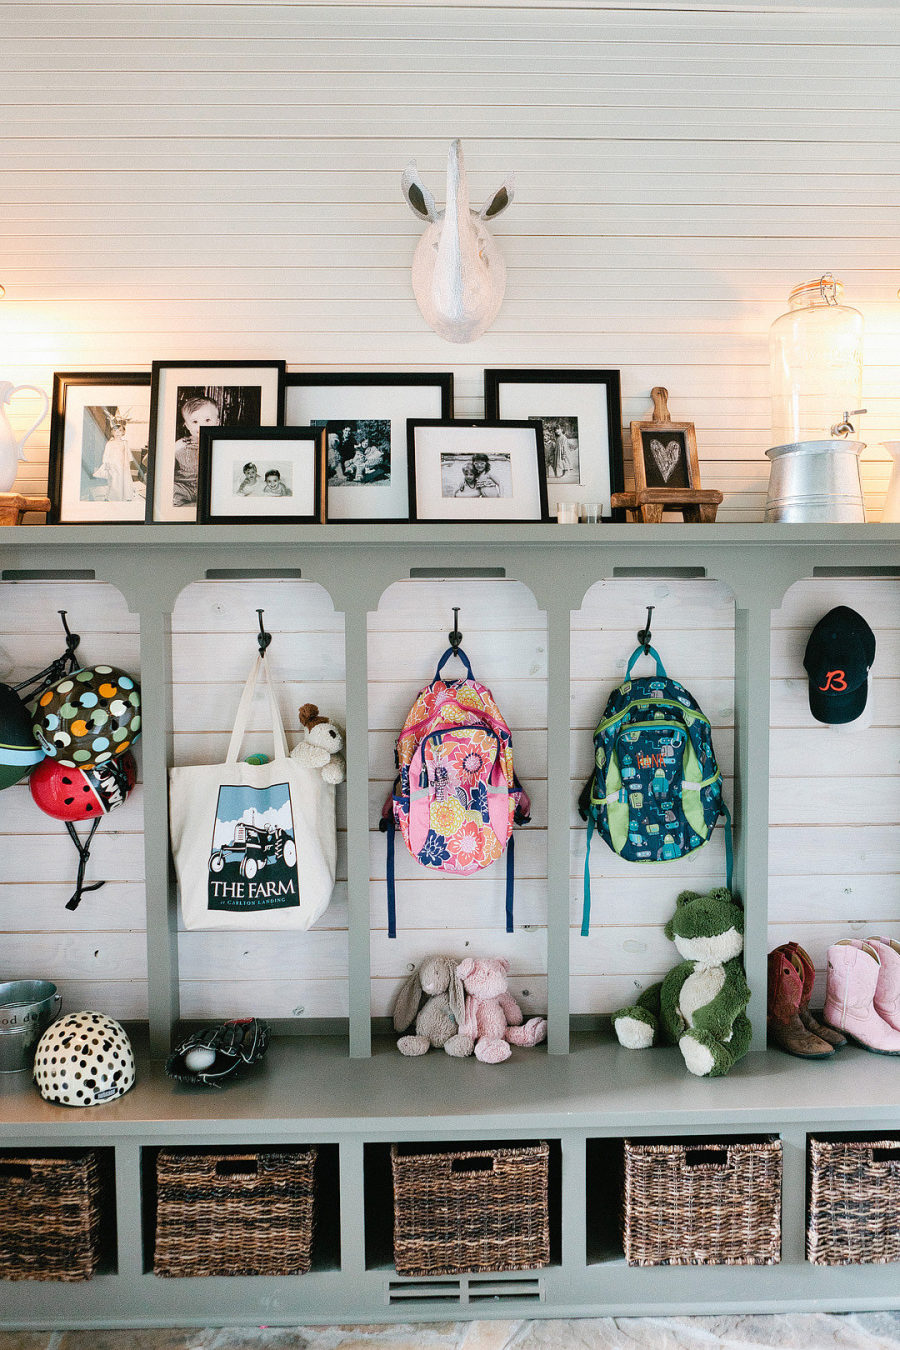 25 inspiring mudroom ideas for every home and style - 25 Inspiring Mudroom Ideas For Every Home And Style